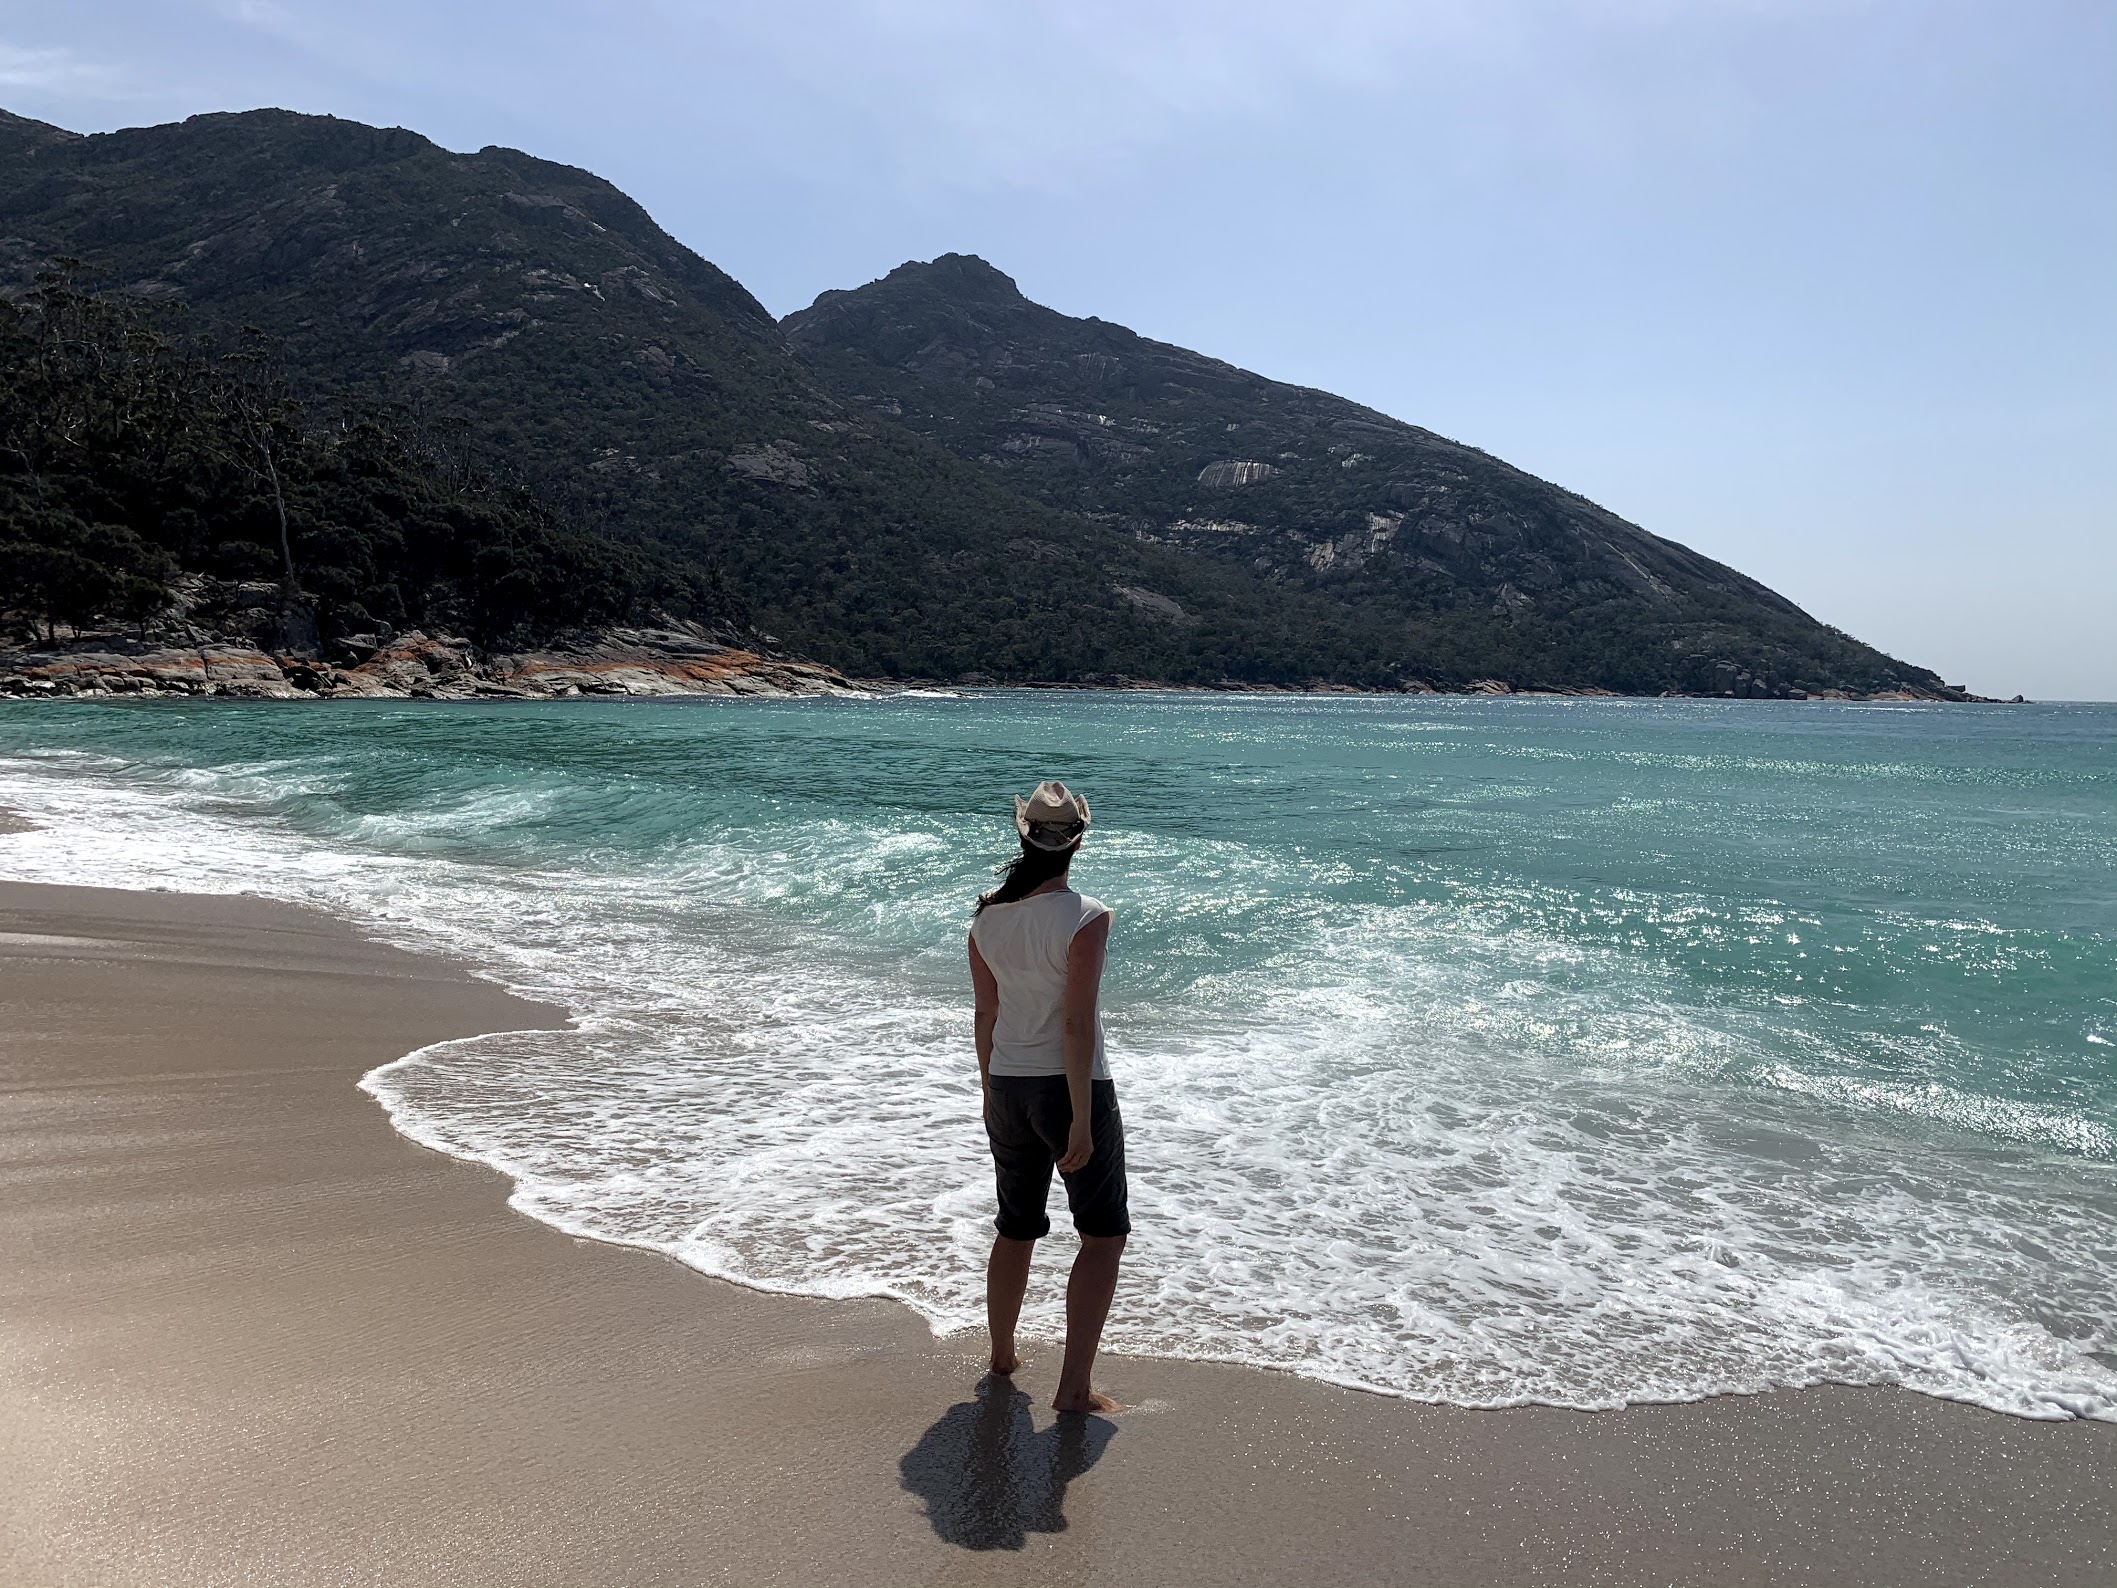 Jen - Looking out at Wineglass Bay